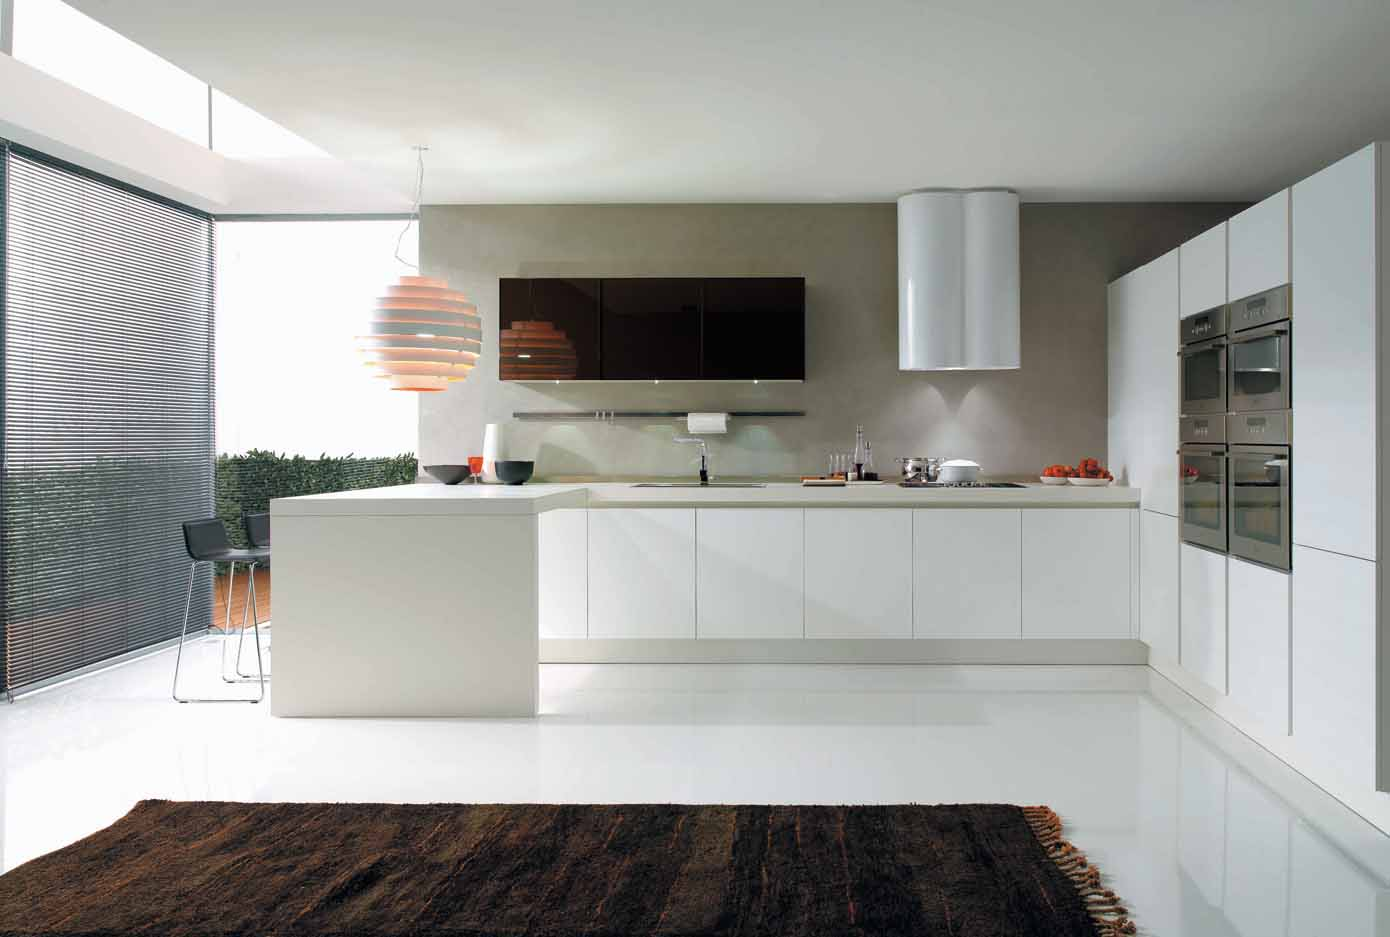 Filo vanity top kitchen design euromobil for Popular kitchen designs